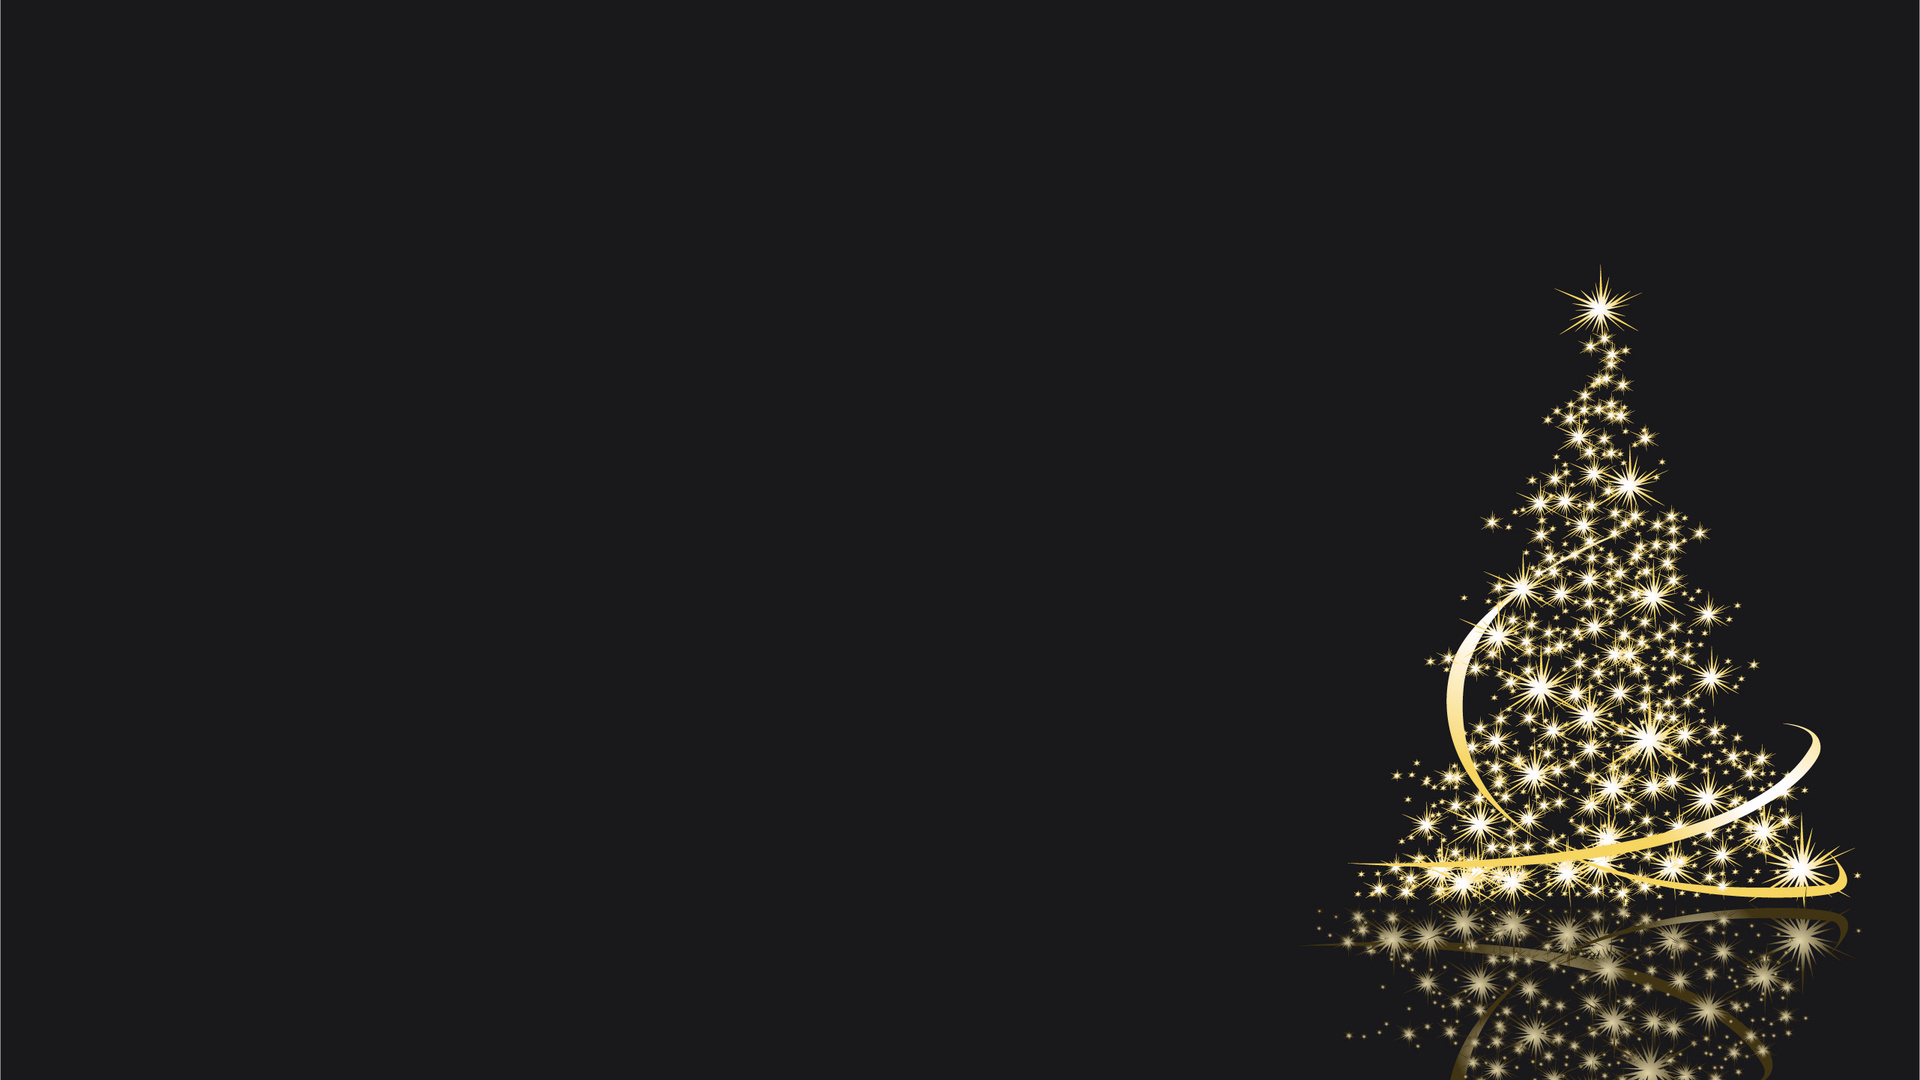 gold christmas tree wallpaper - photo #12